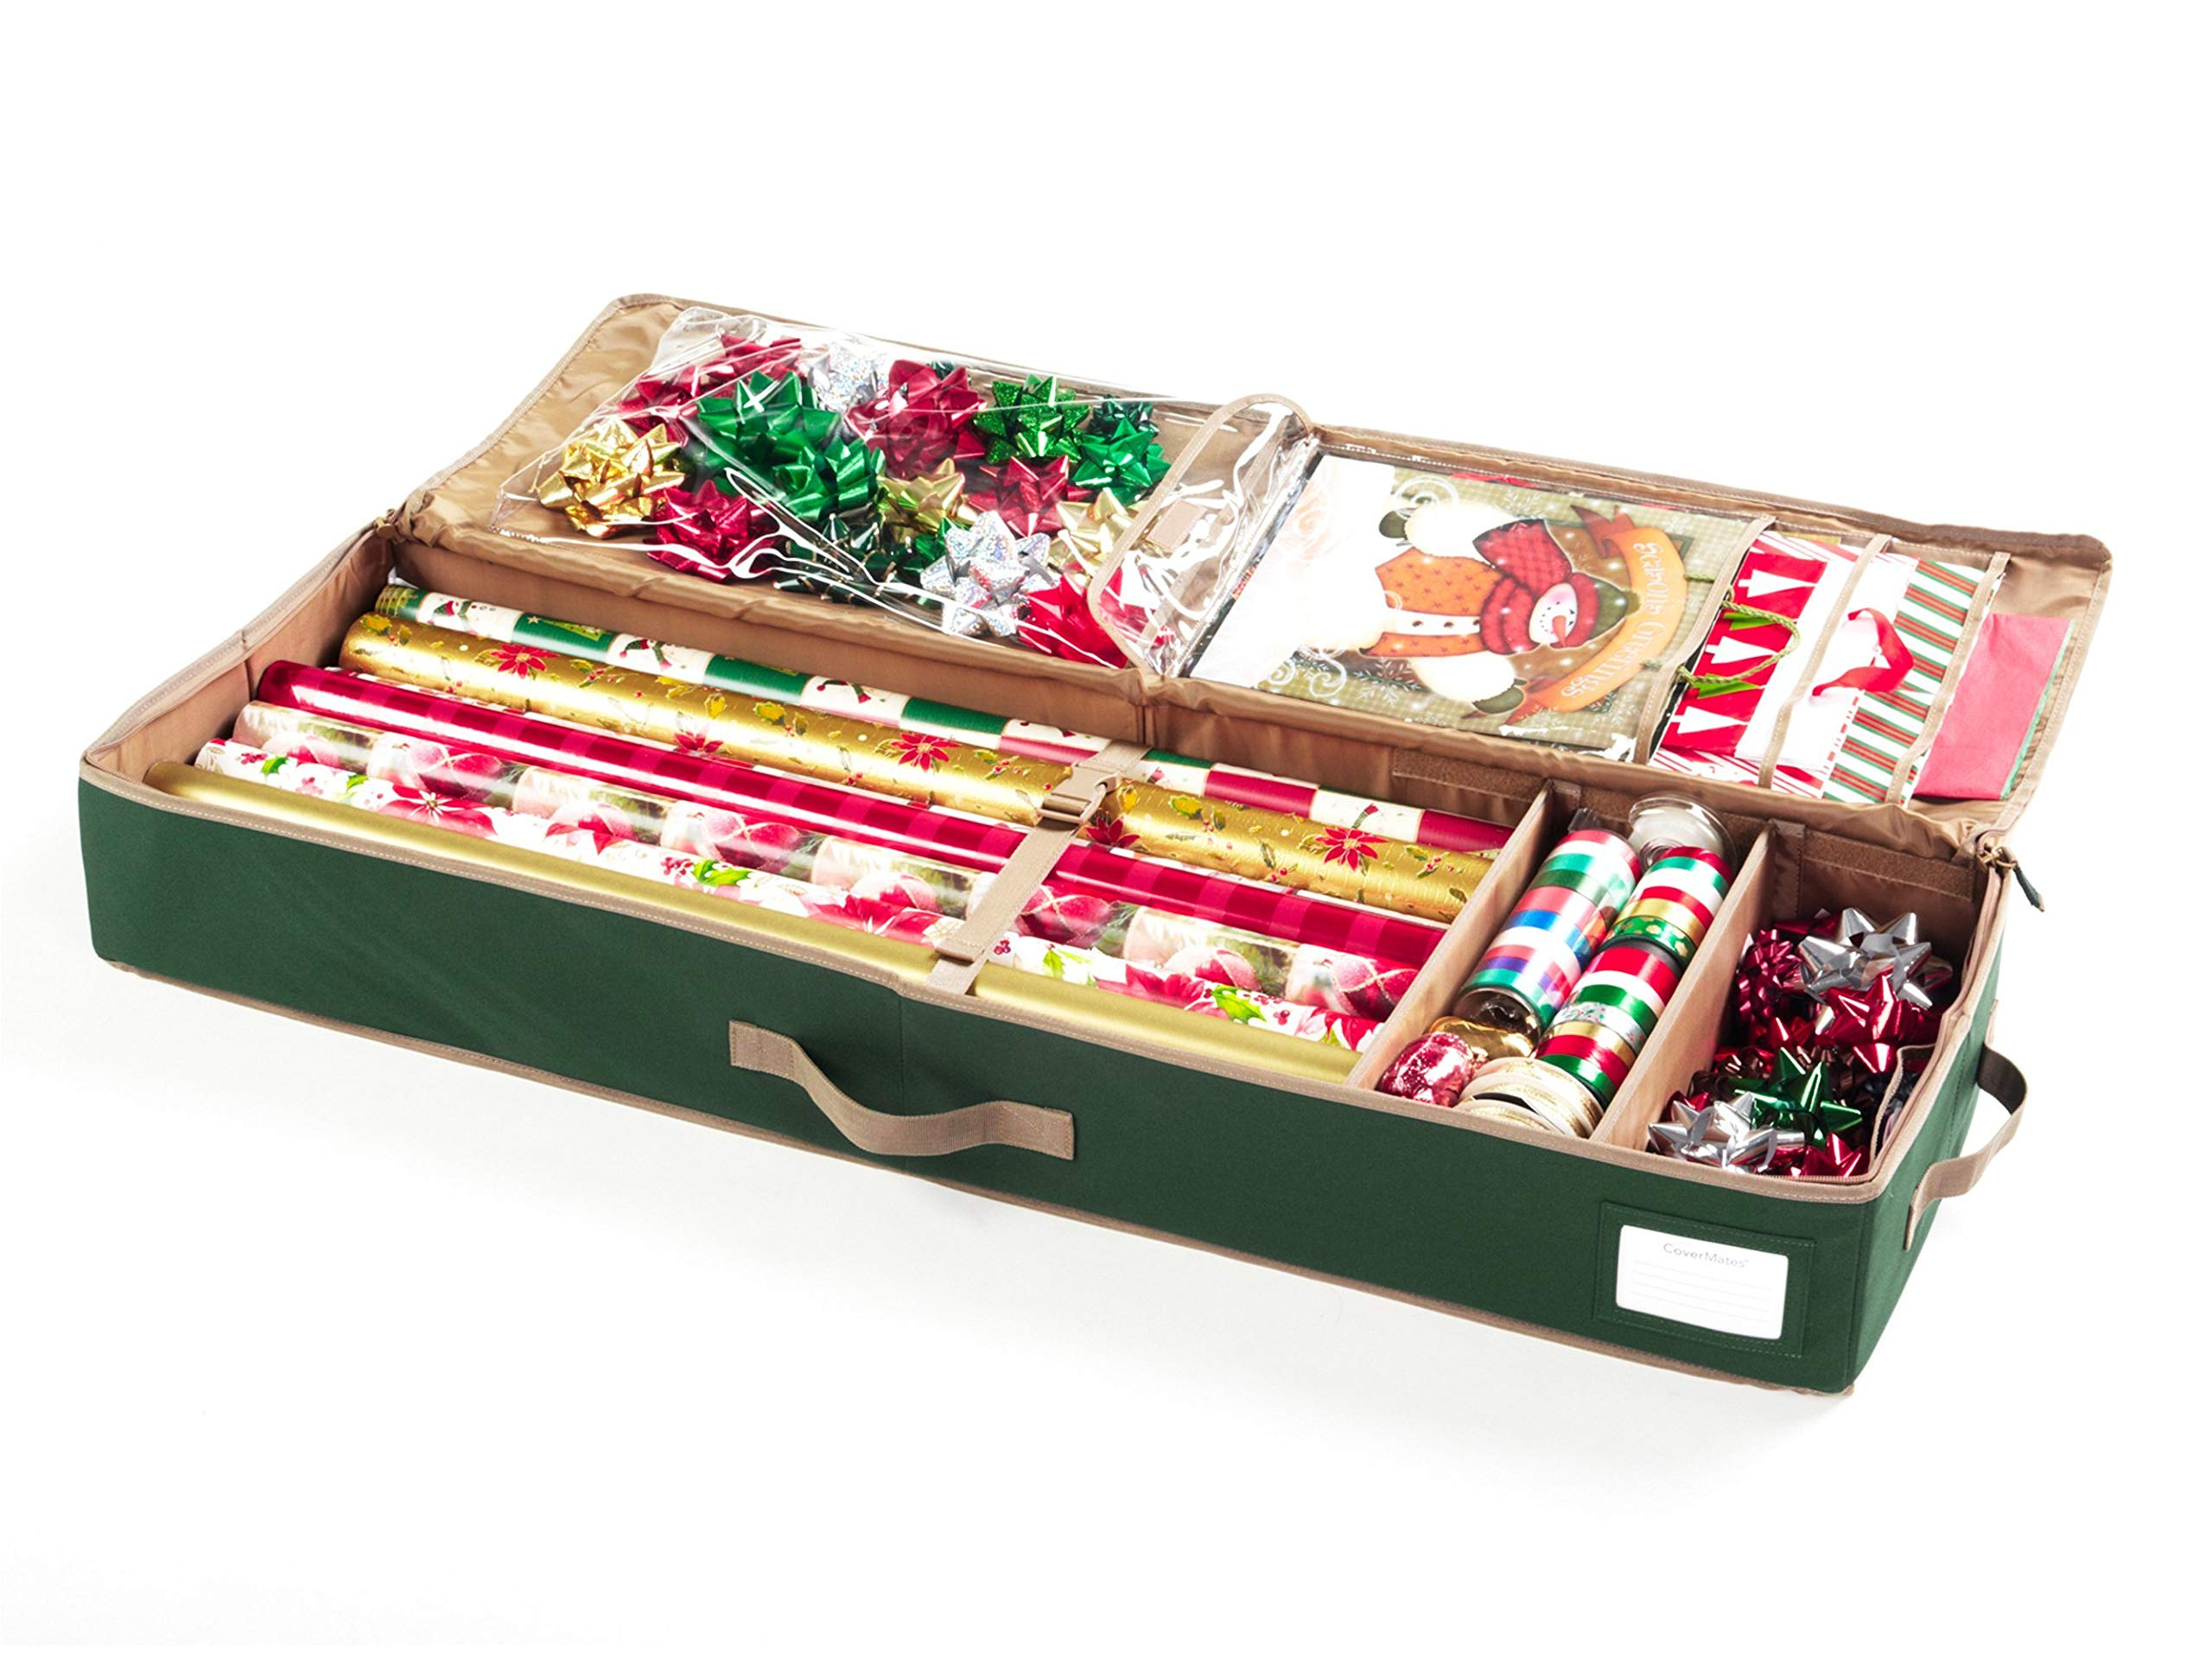 Covermates - Premium Deluxe Gift Wrap Organizer - Holds up to 15 Rolls + Accessories - 3 Year Warranty - Green by Covermates